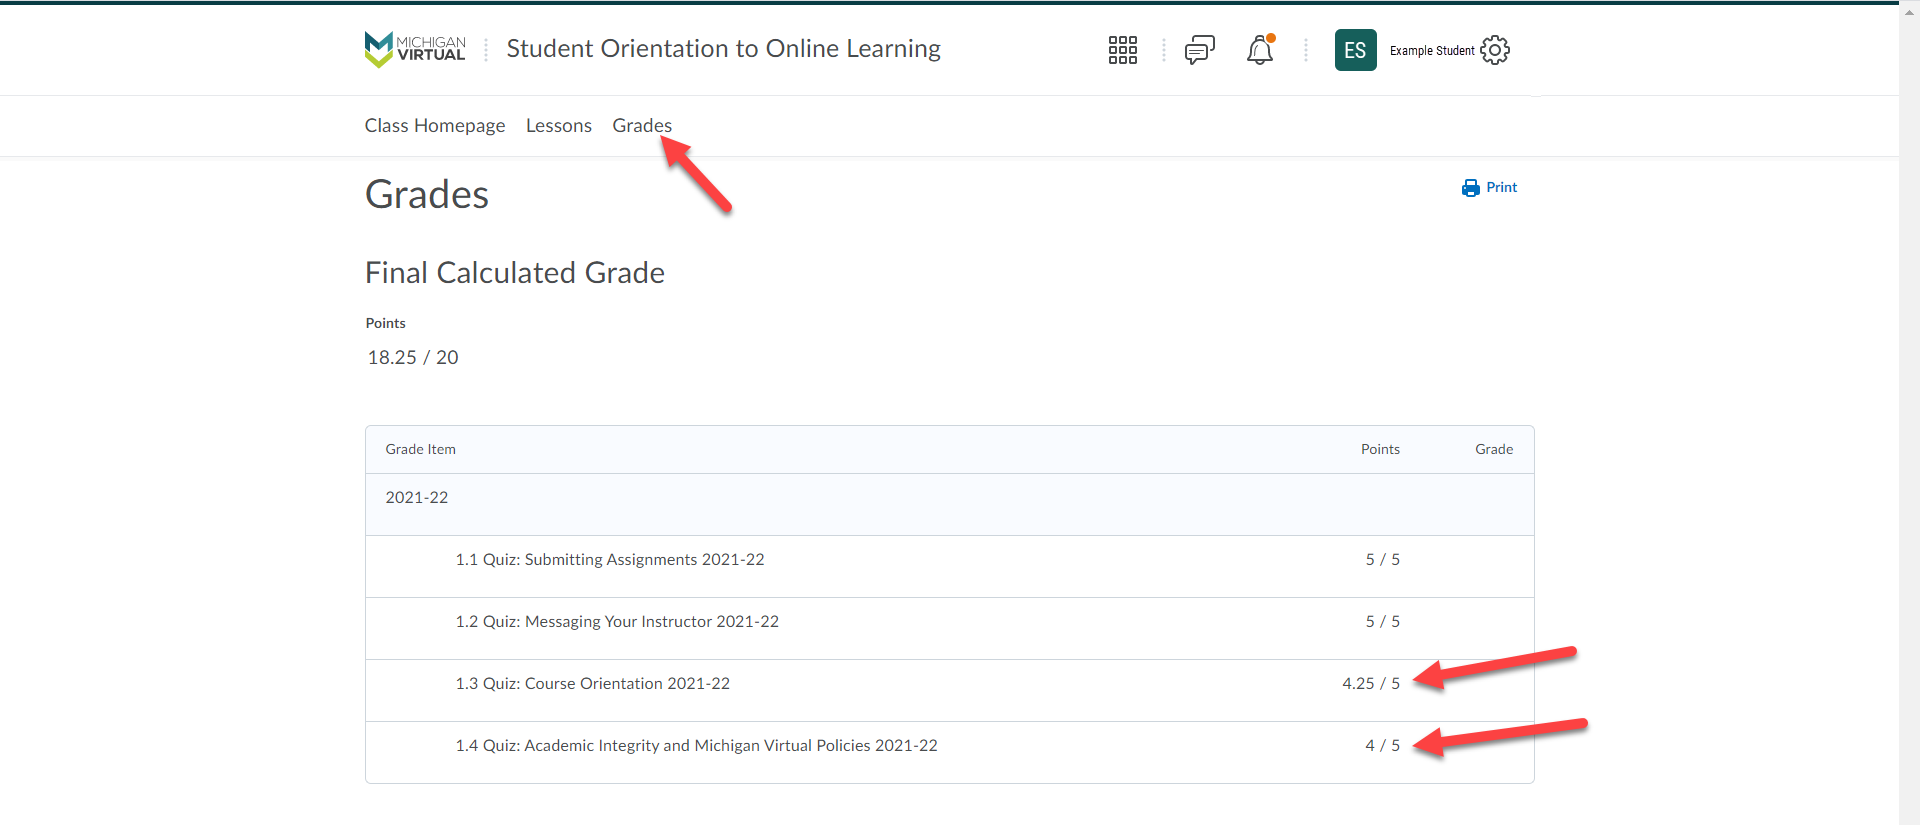 The Student Orientation to Online Learning Grades page is shown with an arrow pointing to the Grades option. Additional arrows point to two graded quizzes with a 4.25 and 4 out of 5 score.